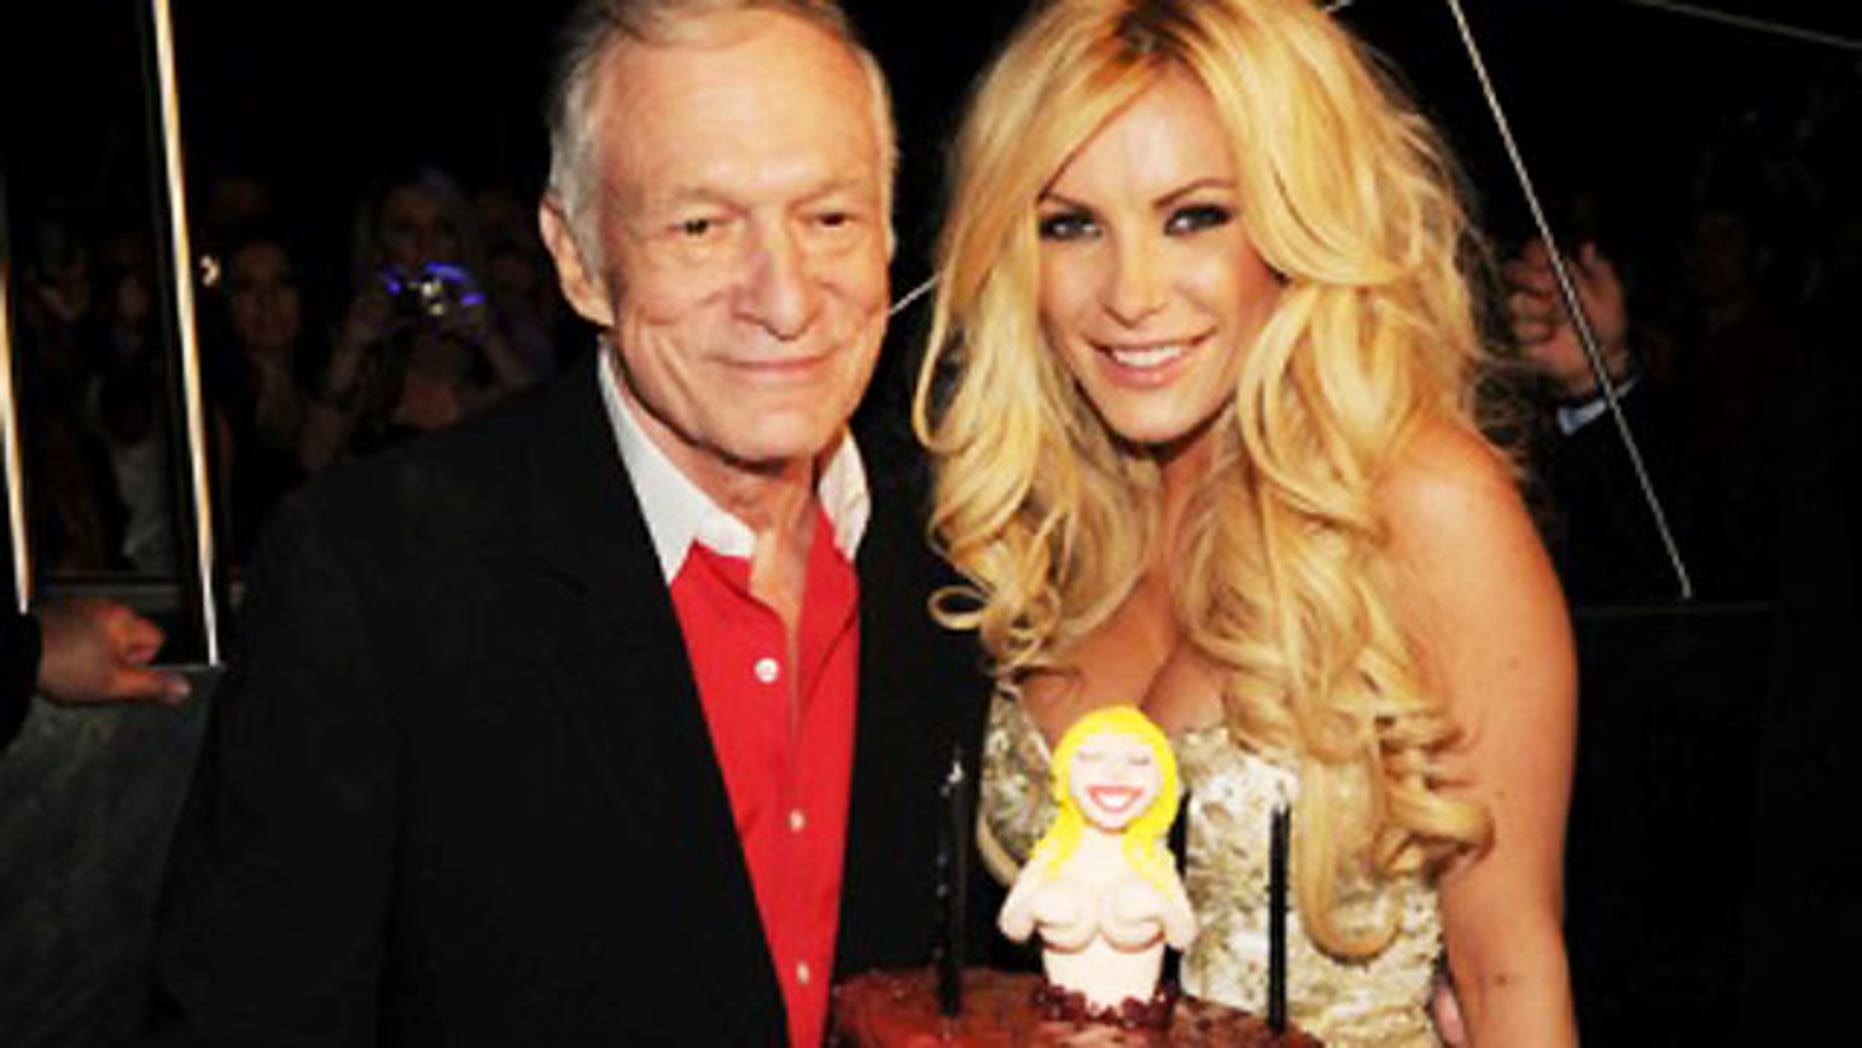 Hugh Hefner found new love with his current fiancee Crystal Harris, shown here with him at his 84th birthday party.